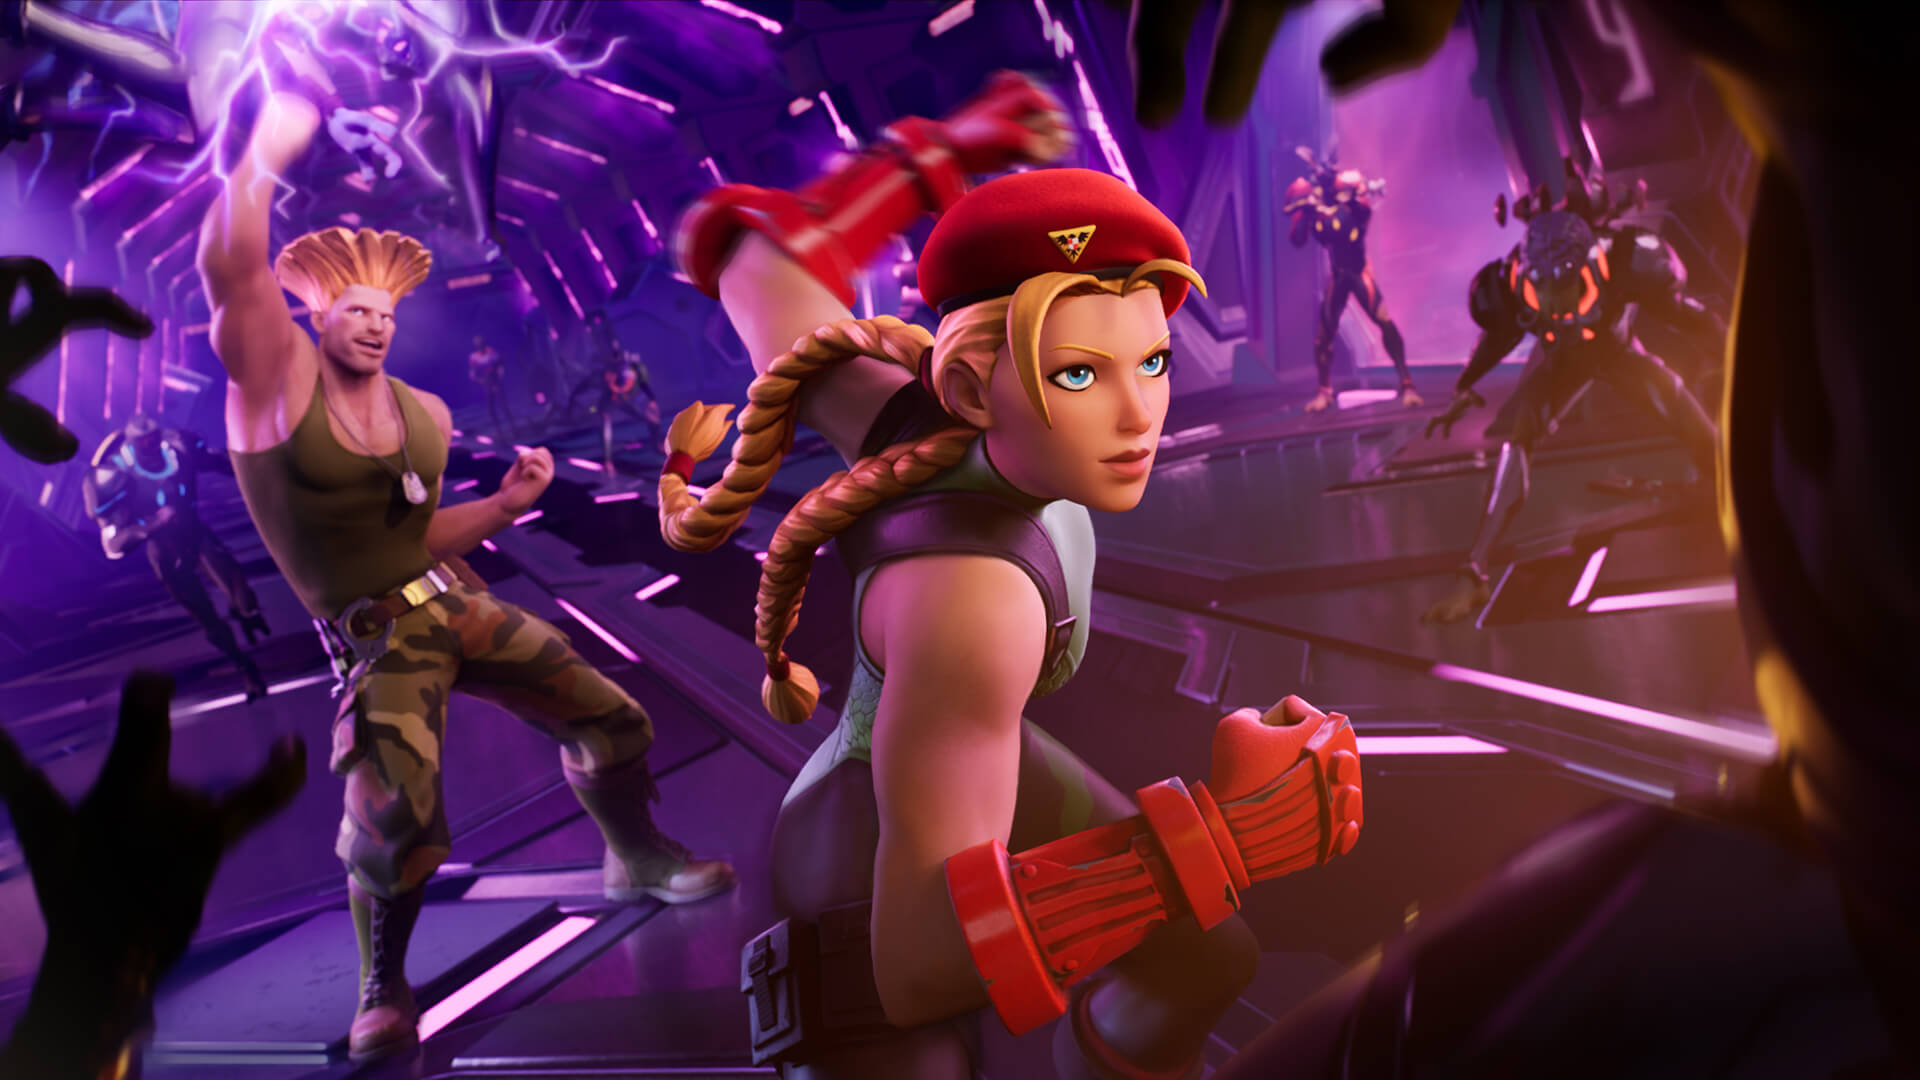 Cammy and Guile from Street Fighter teaming up in a Fortnite loading screen